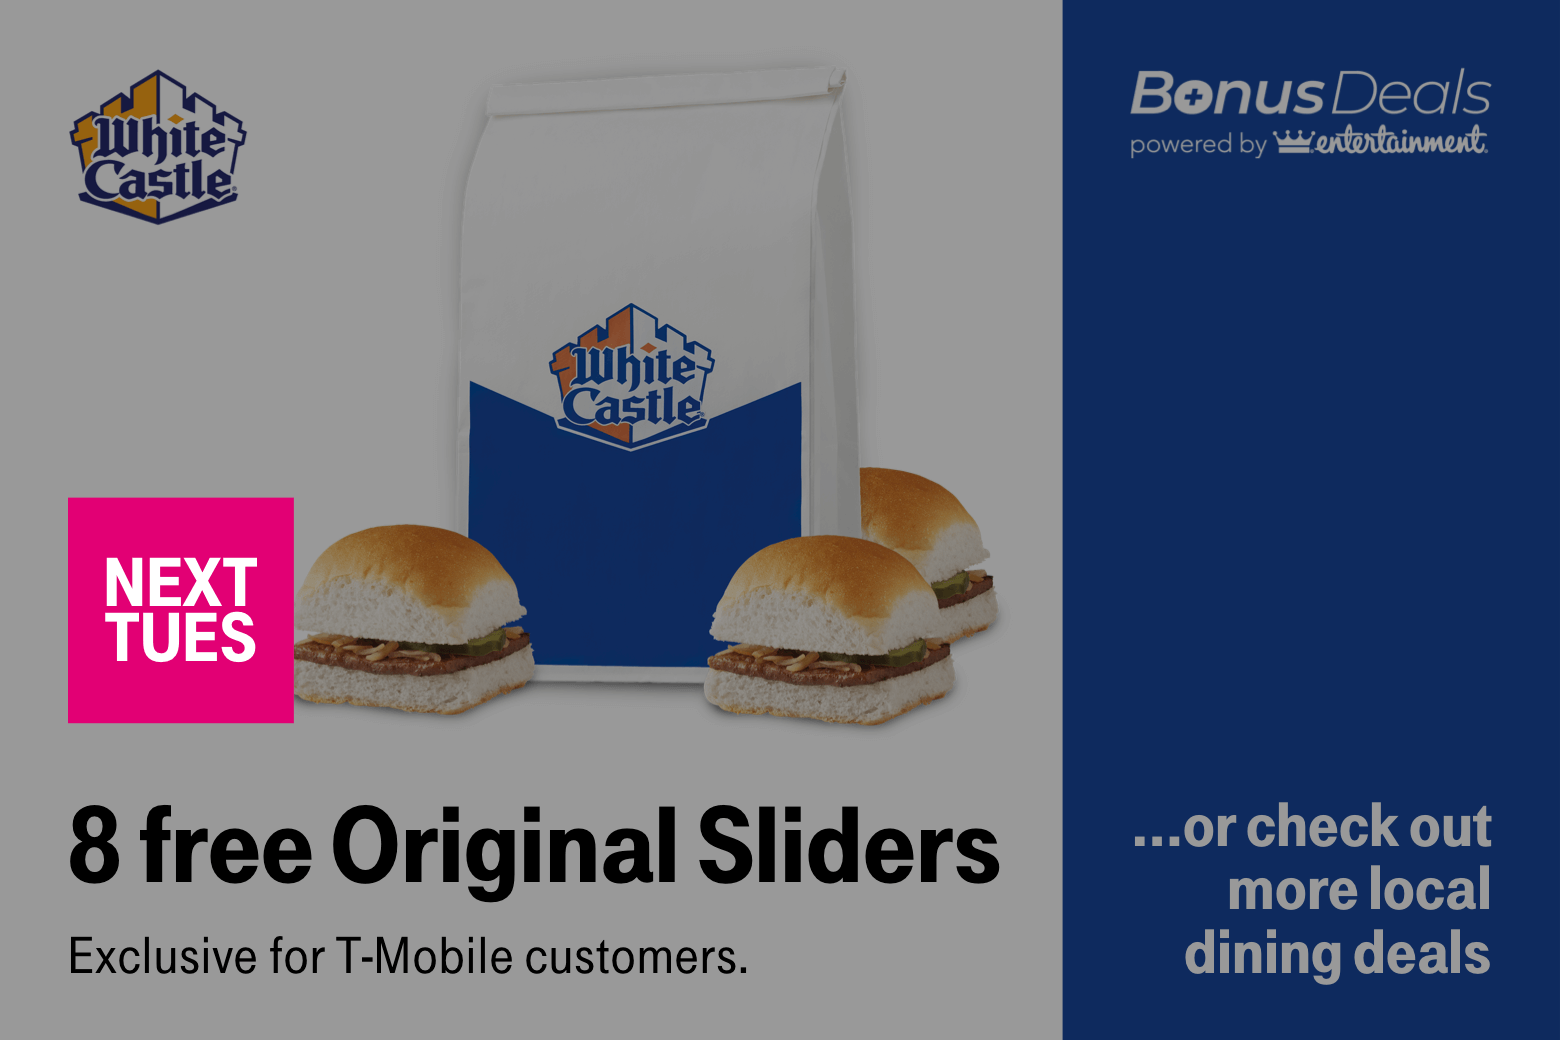 White Castle. Next Tues. Bonus deals powered by Entertainment. 8 free Original Sliders... or check out more local dining deals. Exclusive for T-Mobile customers.